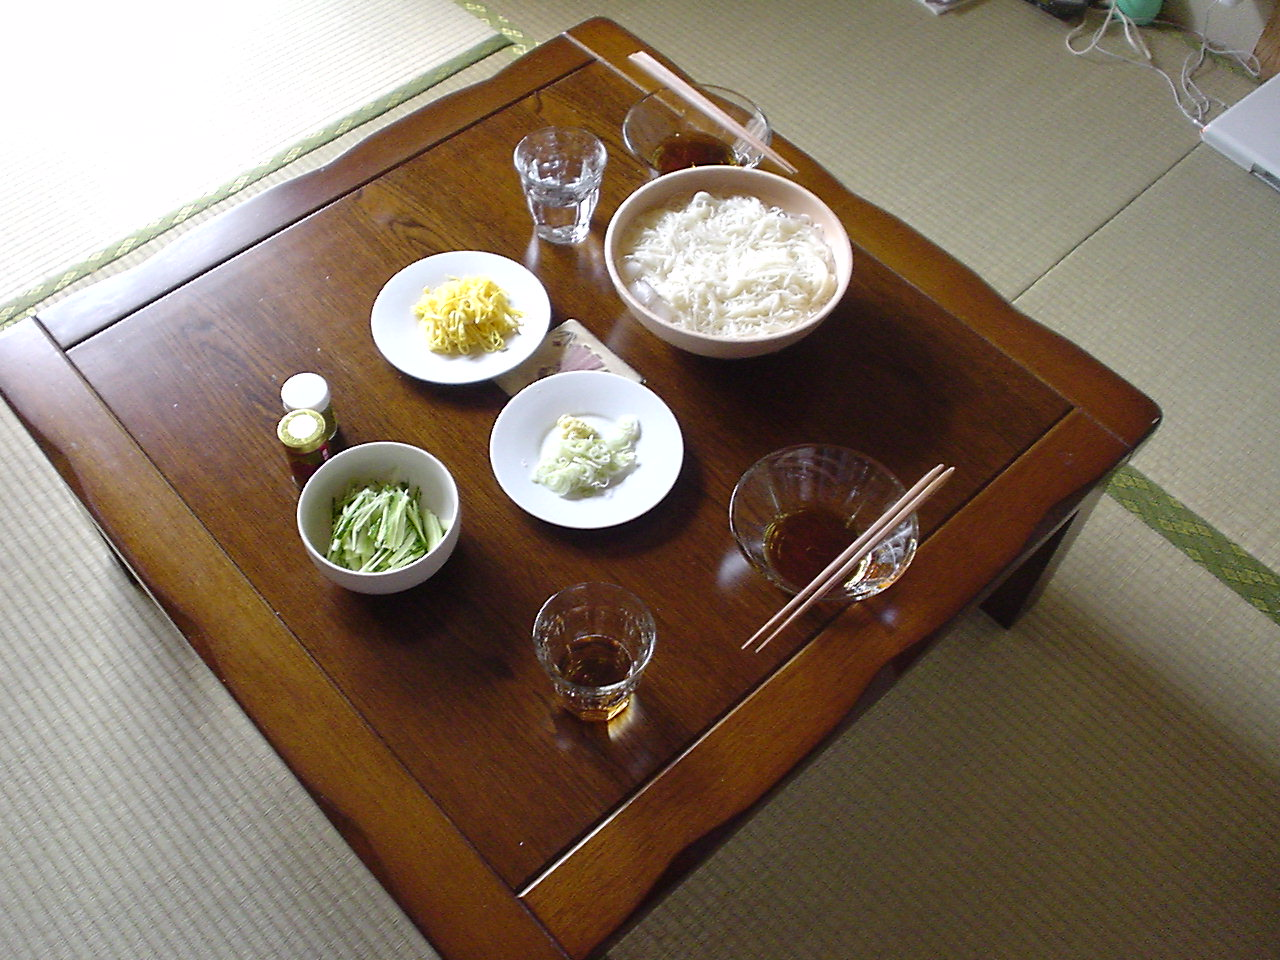 Sōmen (in large white bowl at upper-right) with assorted toppings. (Photo: Shiba Inu / Flickr / Creative Commons )